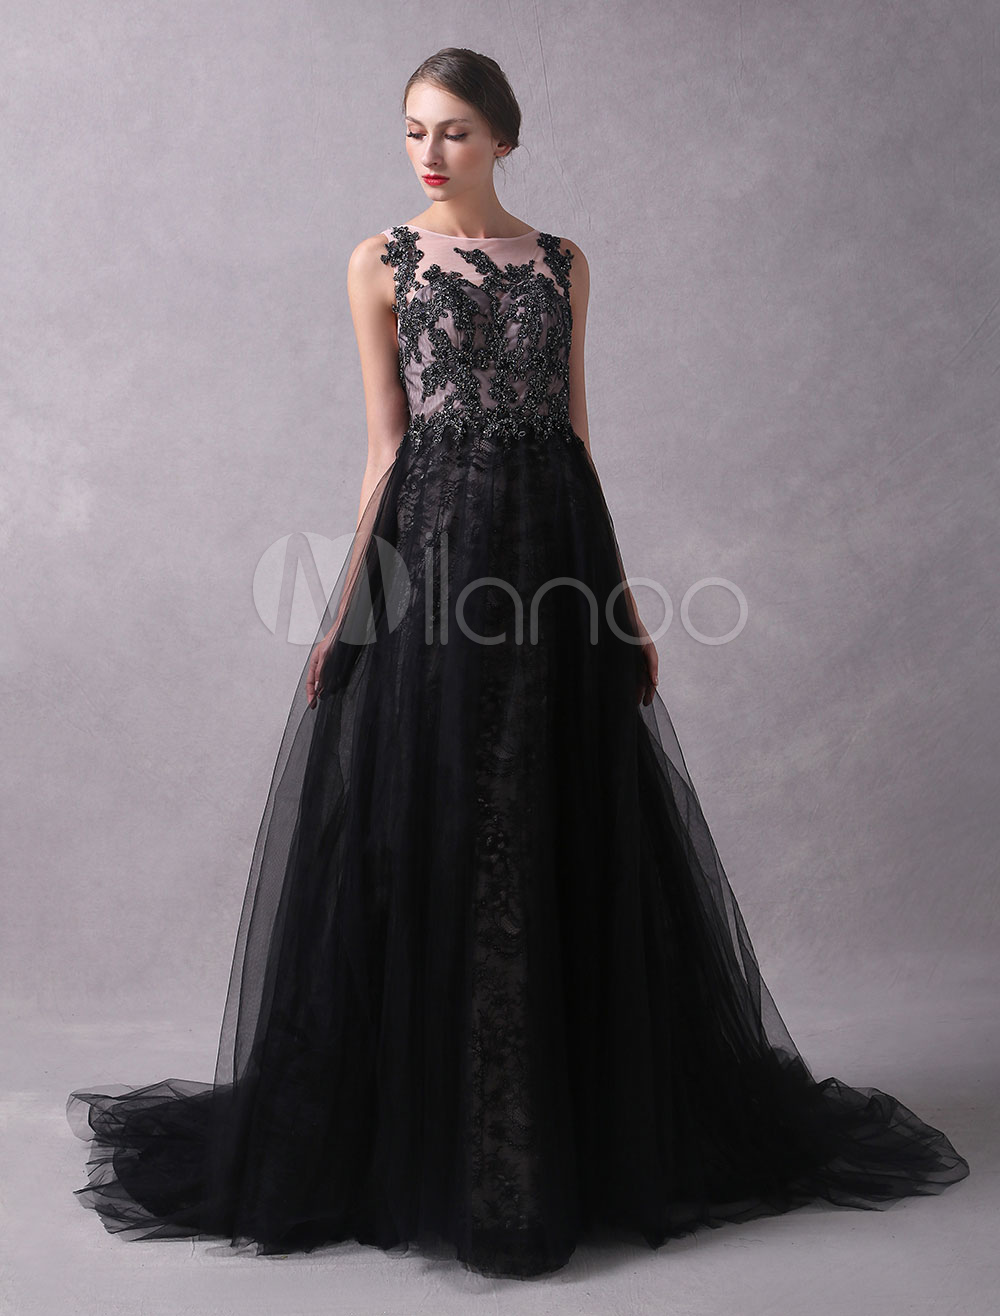 Buy Black Prom Dresses 2018 Long Tulle Lace Beaded Sleeveless Illusion Round Neck Formal Evening Dresses With Train for $276.24 in Milanoo store